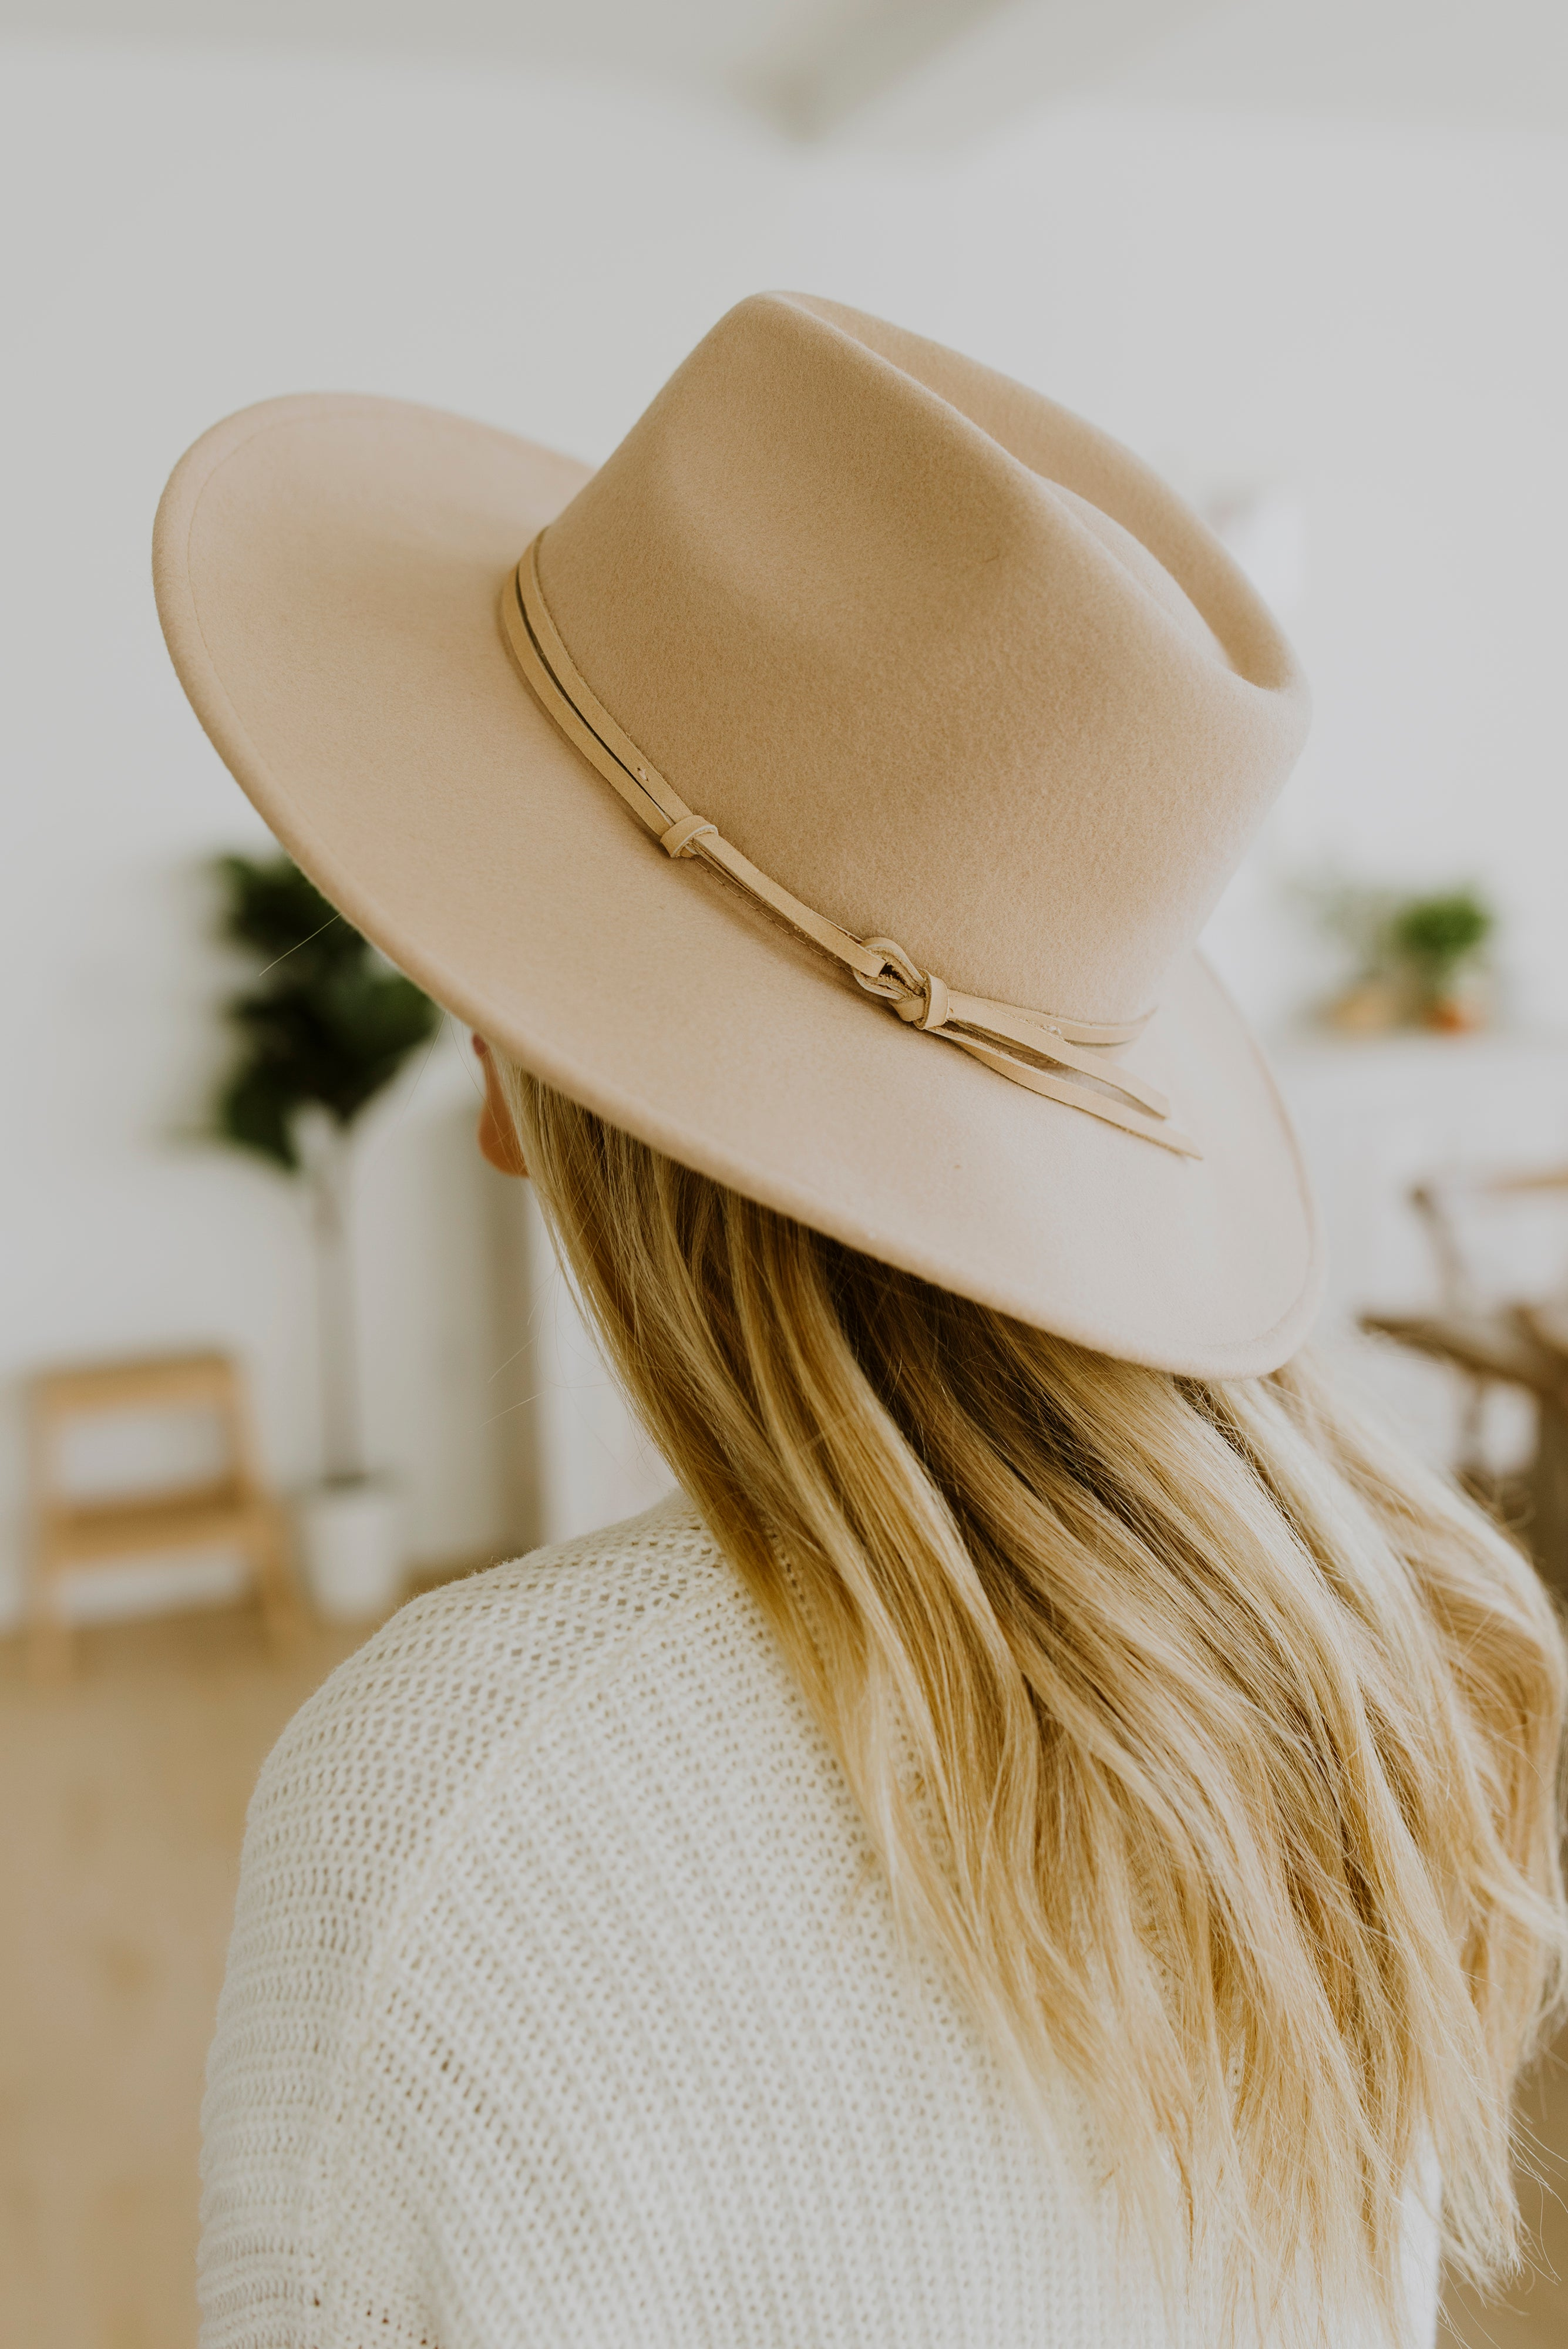 boutique, winter outfits, 2021, outfit ideas, outfits, hats, hats for women, fedora, panama hat, wide brim hat outfit, outfits with hats, panama outback hat, wool panama hat, wool panama hat womens, wool hat with brim, wool hat womens, women's panama hat, trendy outfits, 2021 fashion trends, cute winter outfits, cute hats, winter hats, street style aesthetic, outfit, winter brunch outfit, teacher outfits, style, streetwear, street style, winter fits, winter streetwear, winter fashion